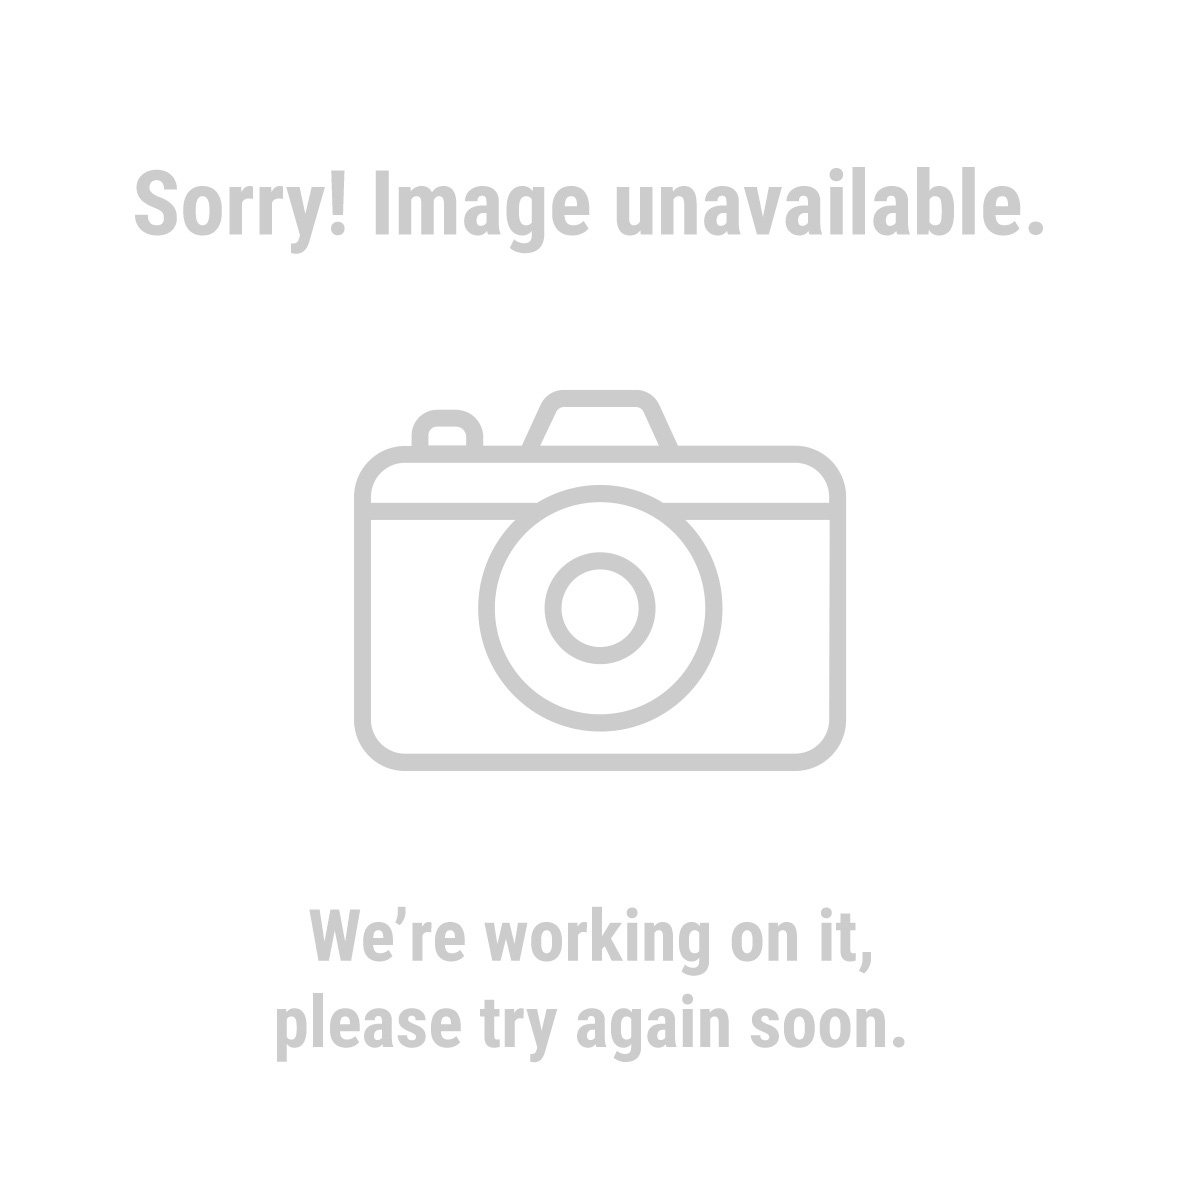 Krause & Becker 60600 5/8 Horsepower Airless Paint Sprayer Kit